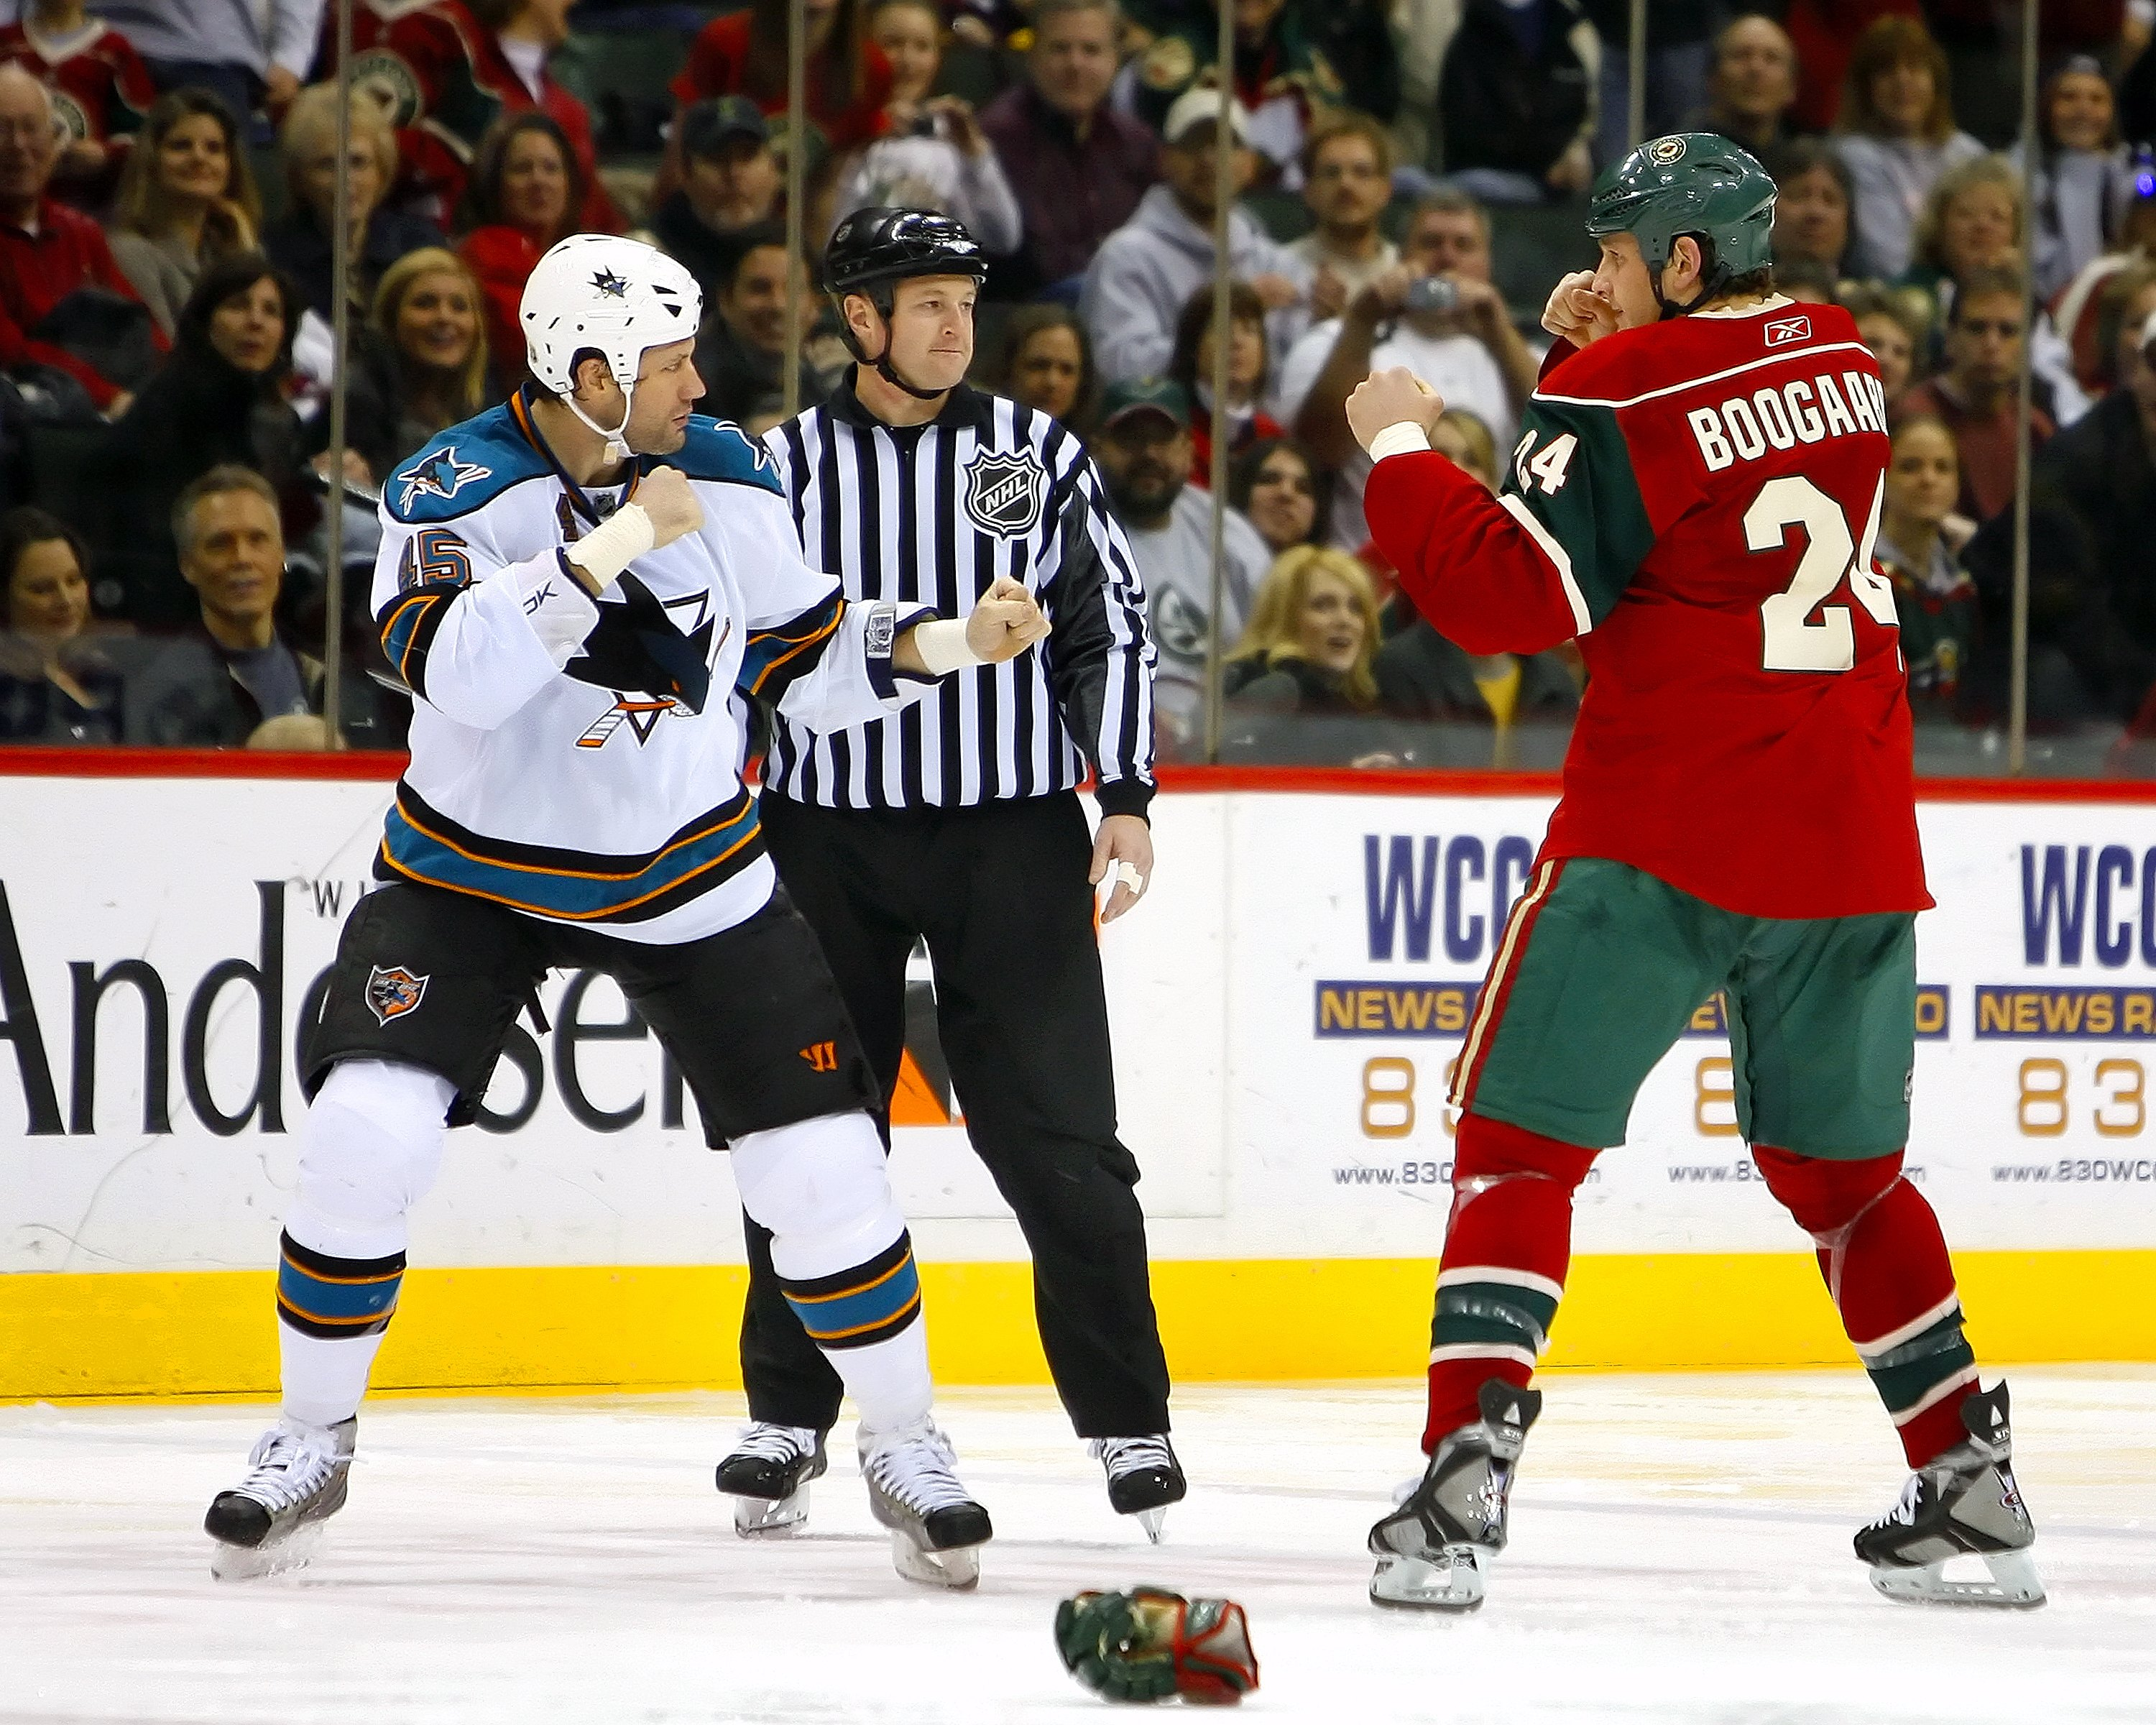 ST. PAUL, MN - DECEMBER 31:  Jody Shelley #45 of the San Jose Sharks and Derek Boogaard #24 of the Minnesota Wild square off to fight December 31, 2008 at the Xcel Energy Center in St. Paul, Minnesota. (Photo by Scott A. Schneider/Getty Images)